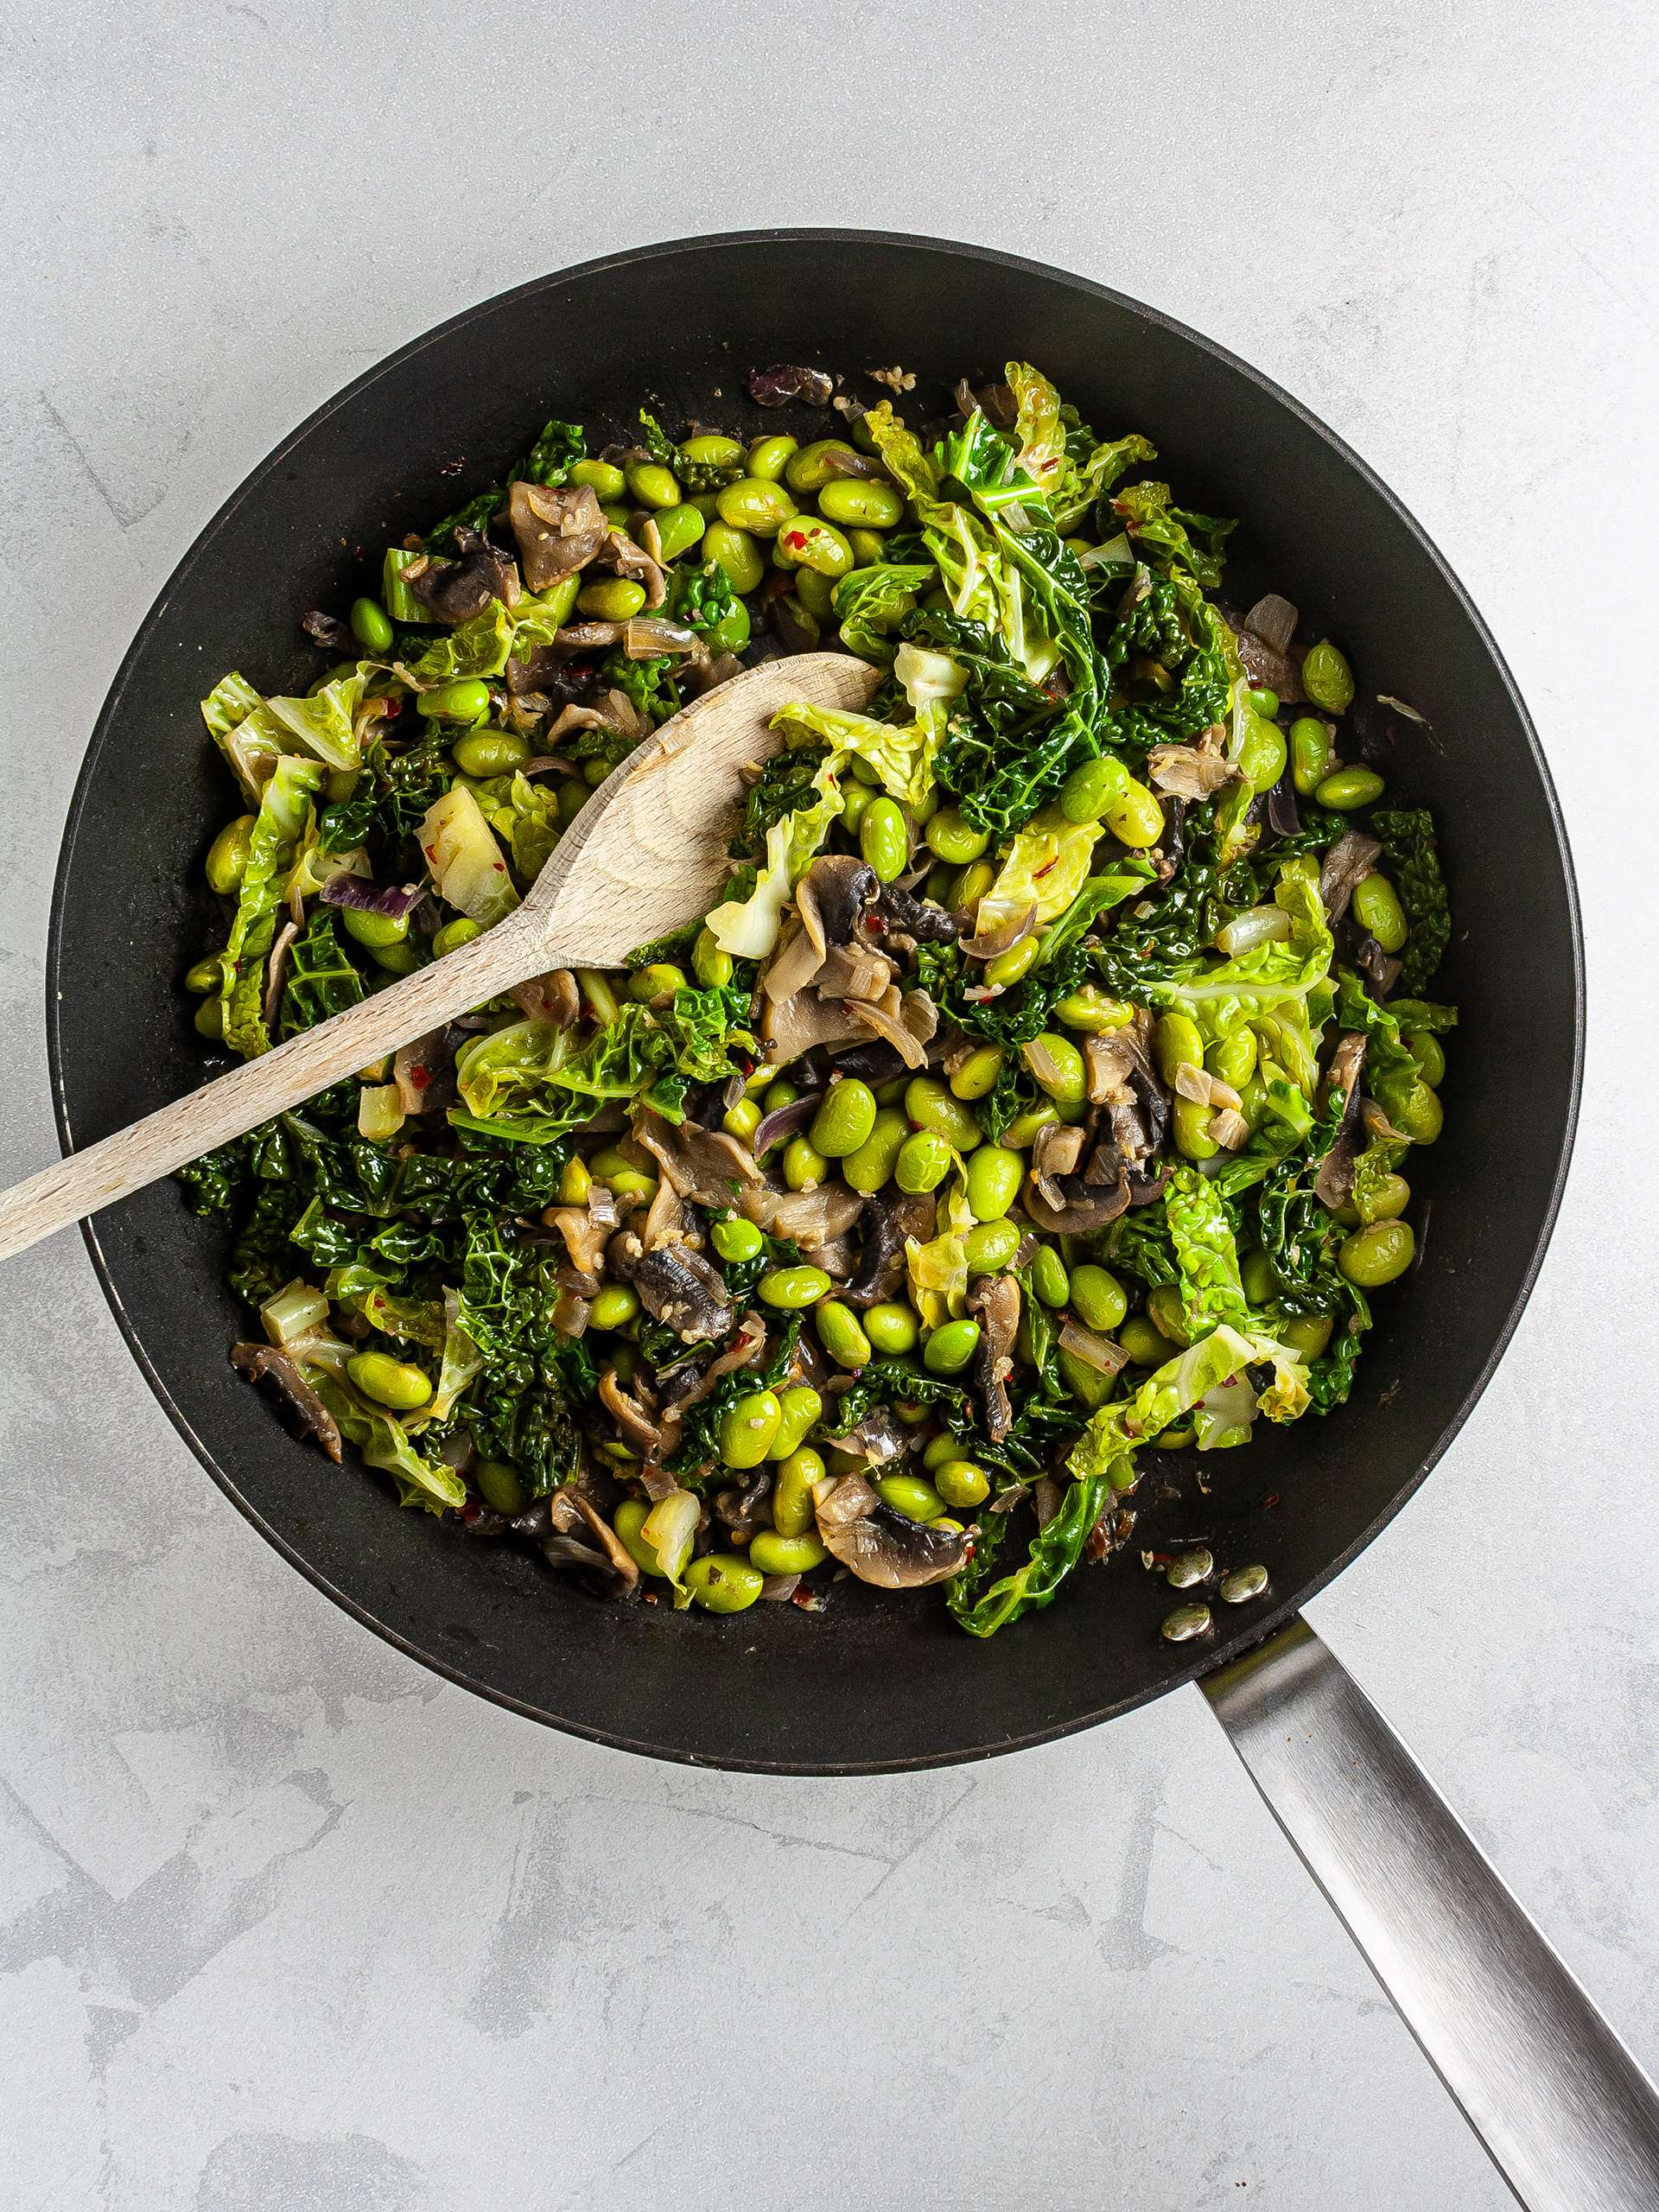 Cooked cabbage, mushroom, and edamame in a skillet